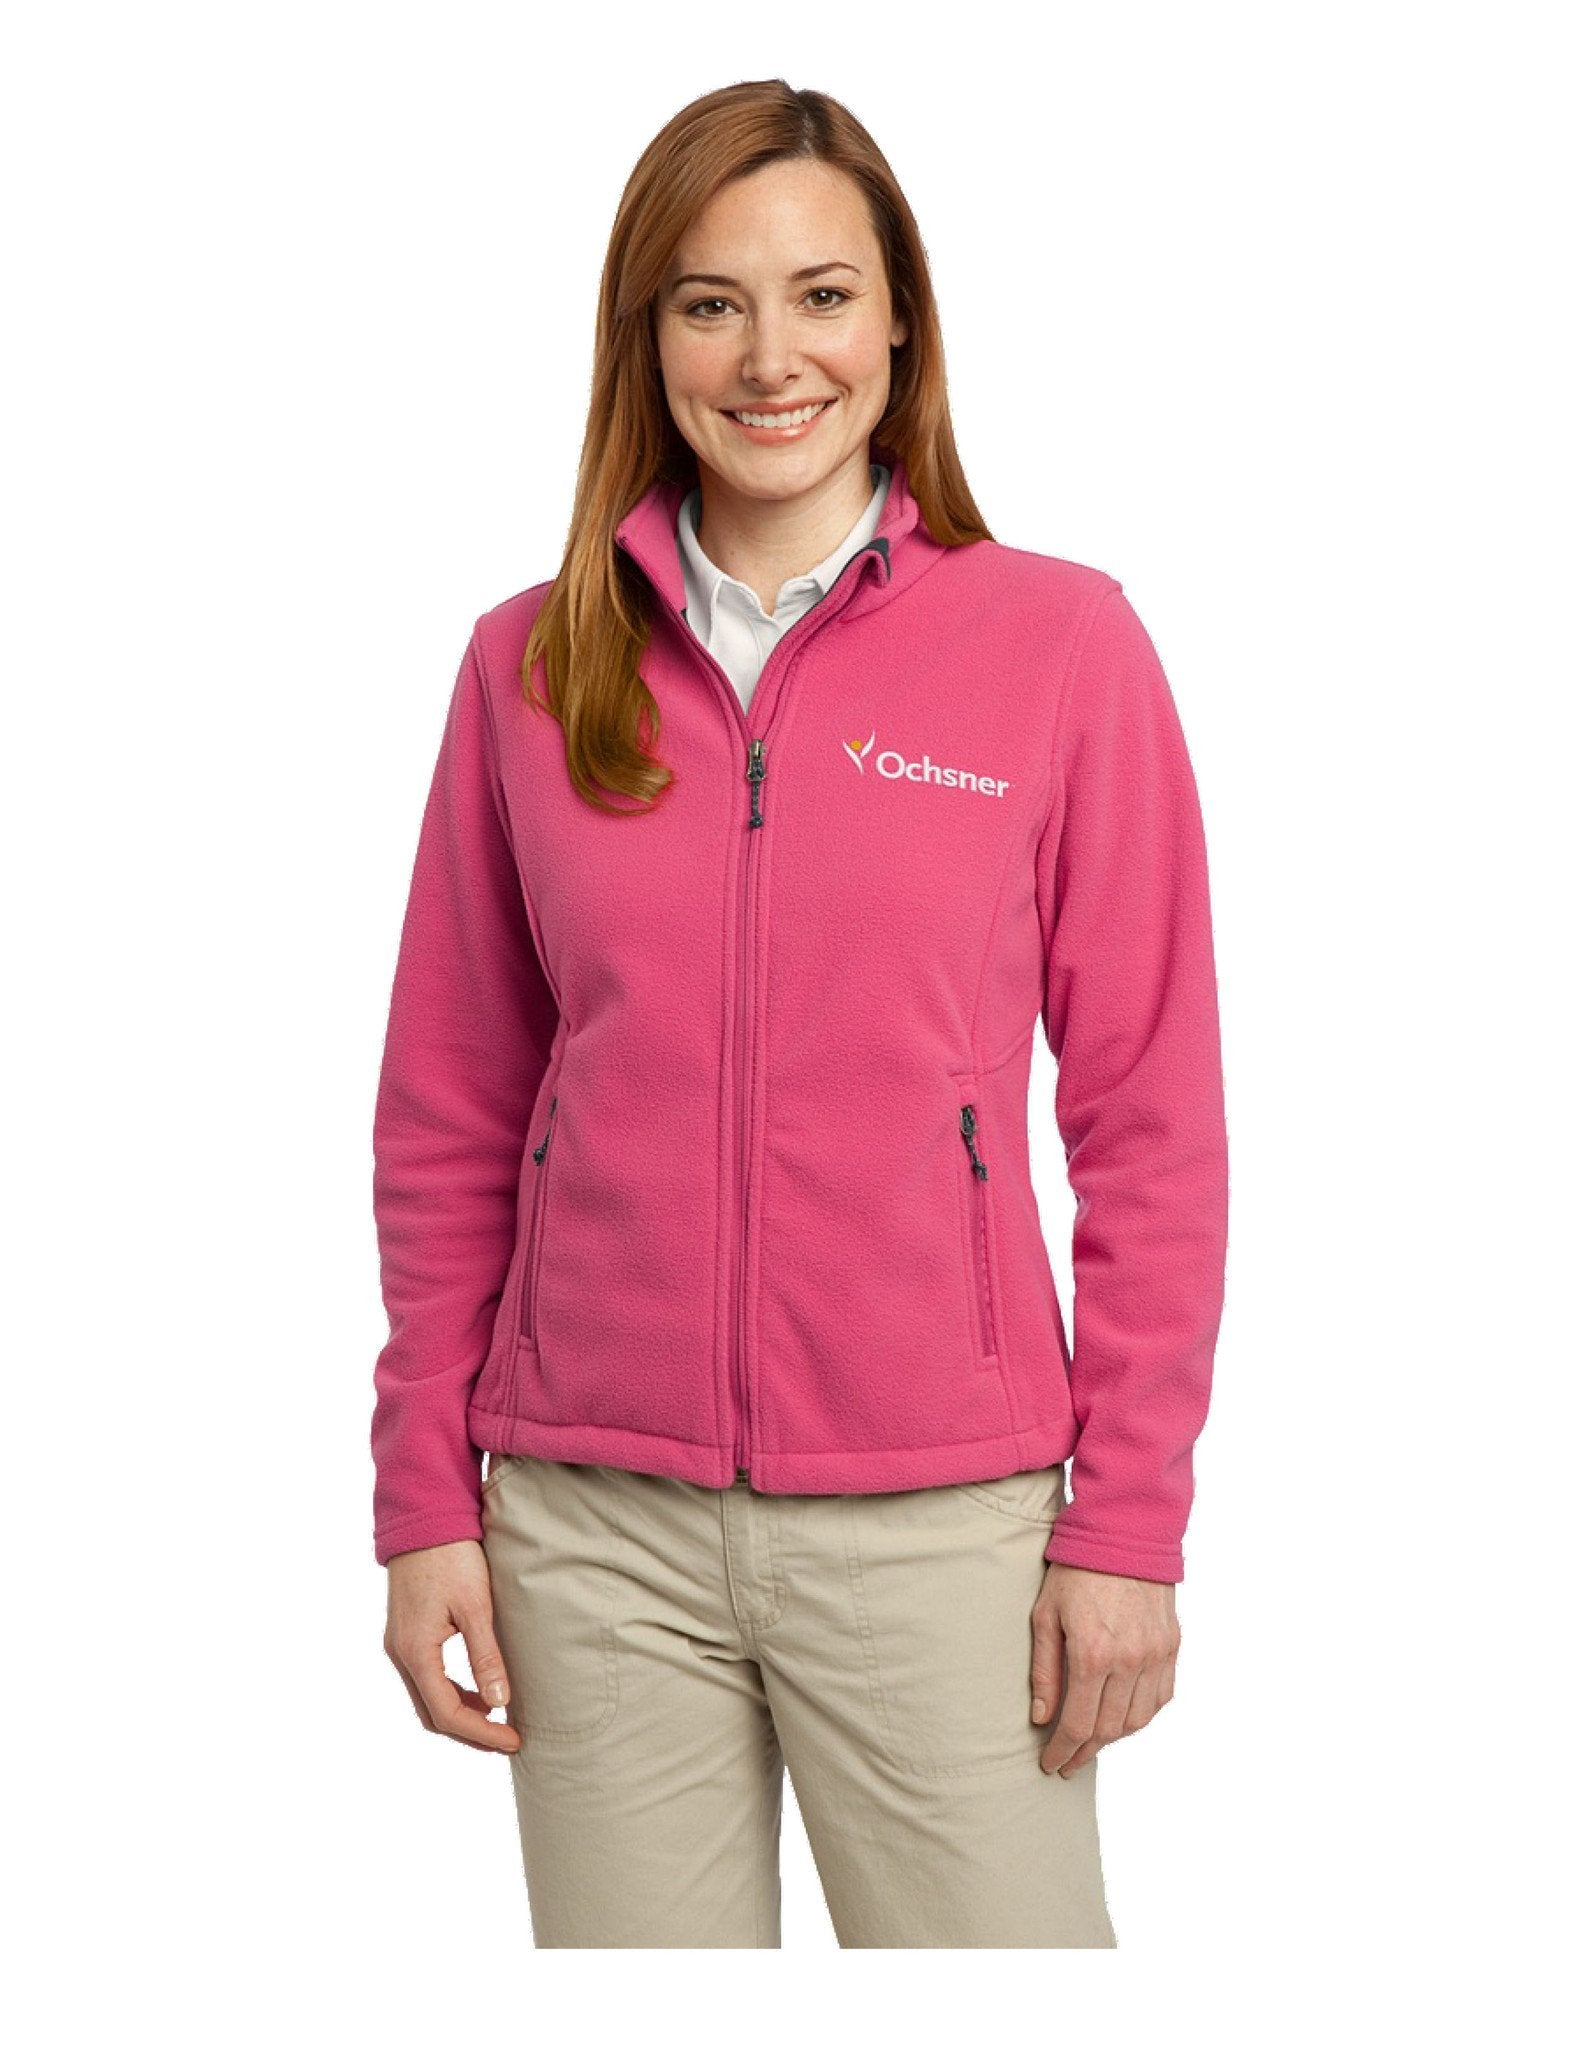 Value Fleece Ladies Jacket w/Ochsner Logo